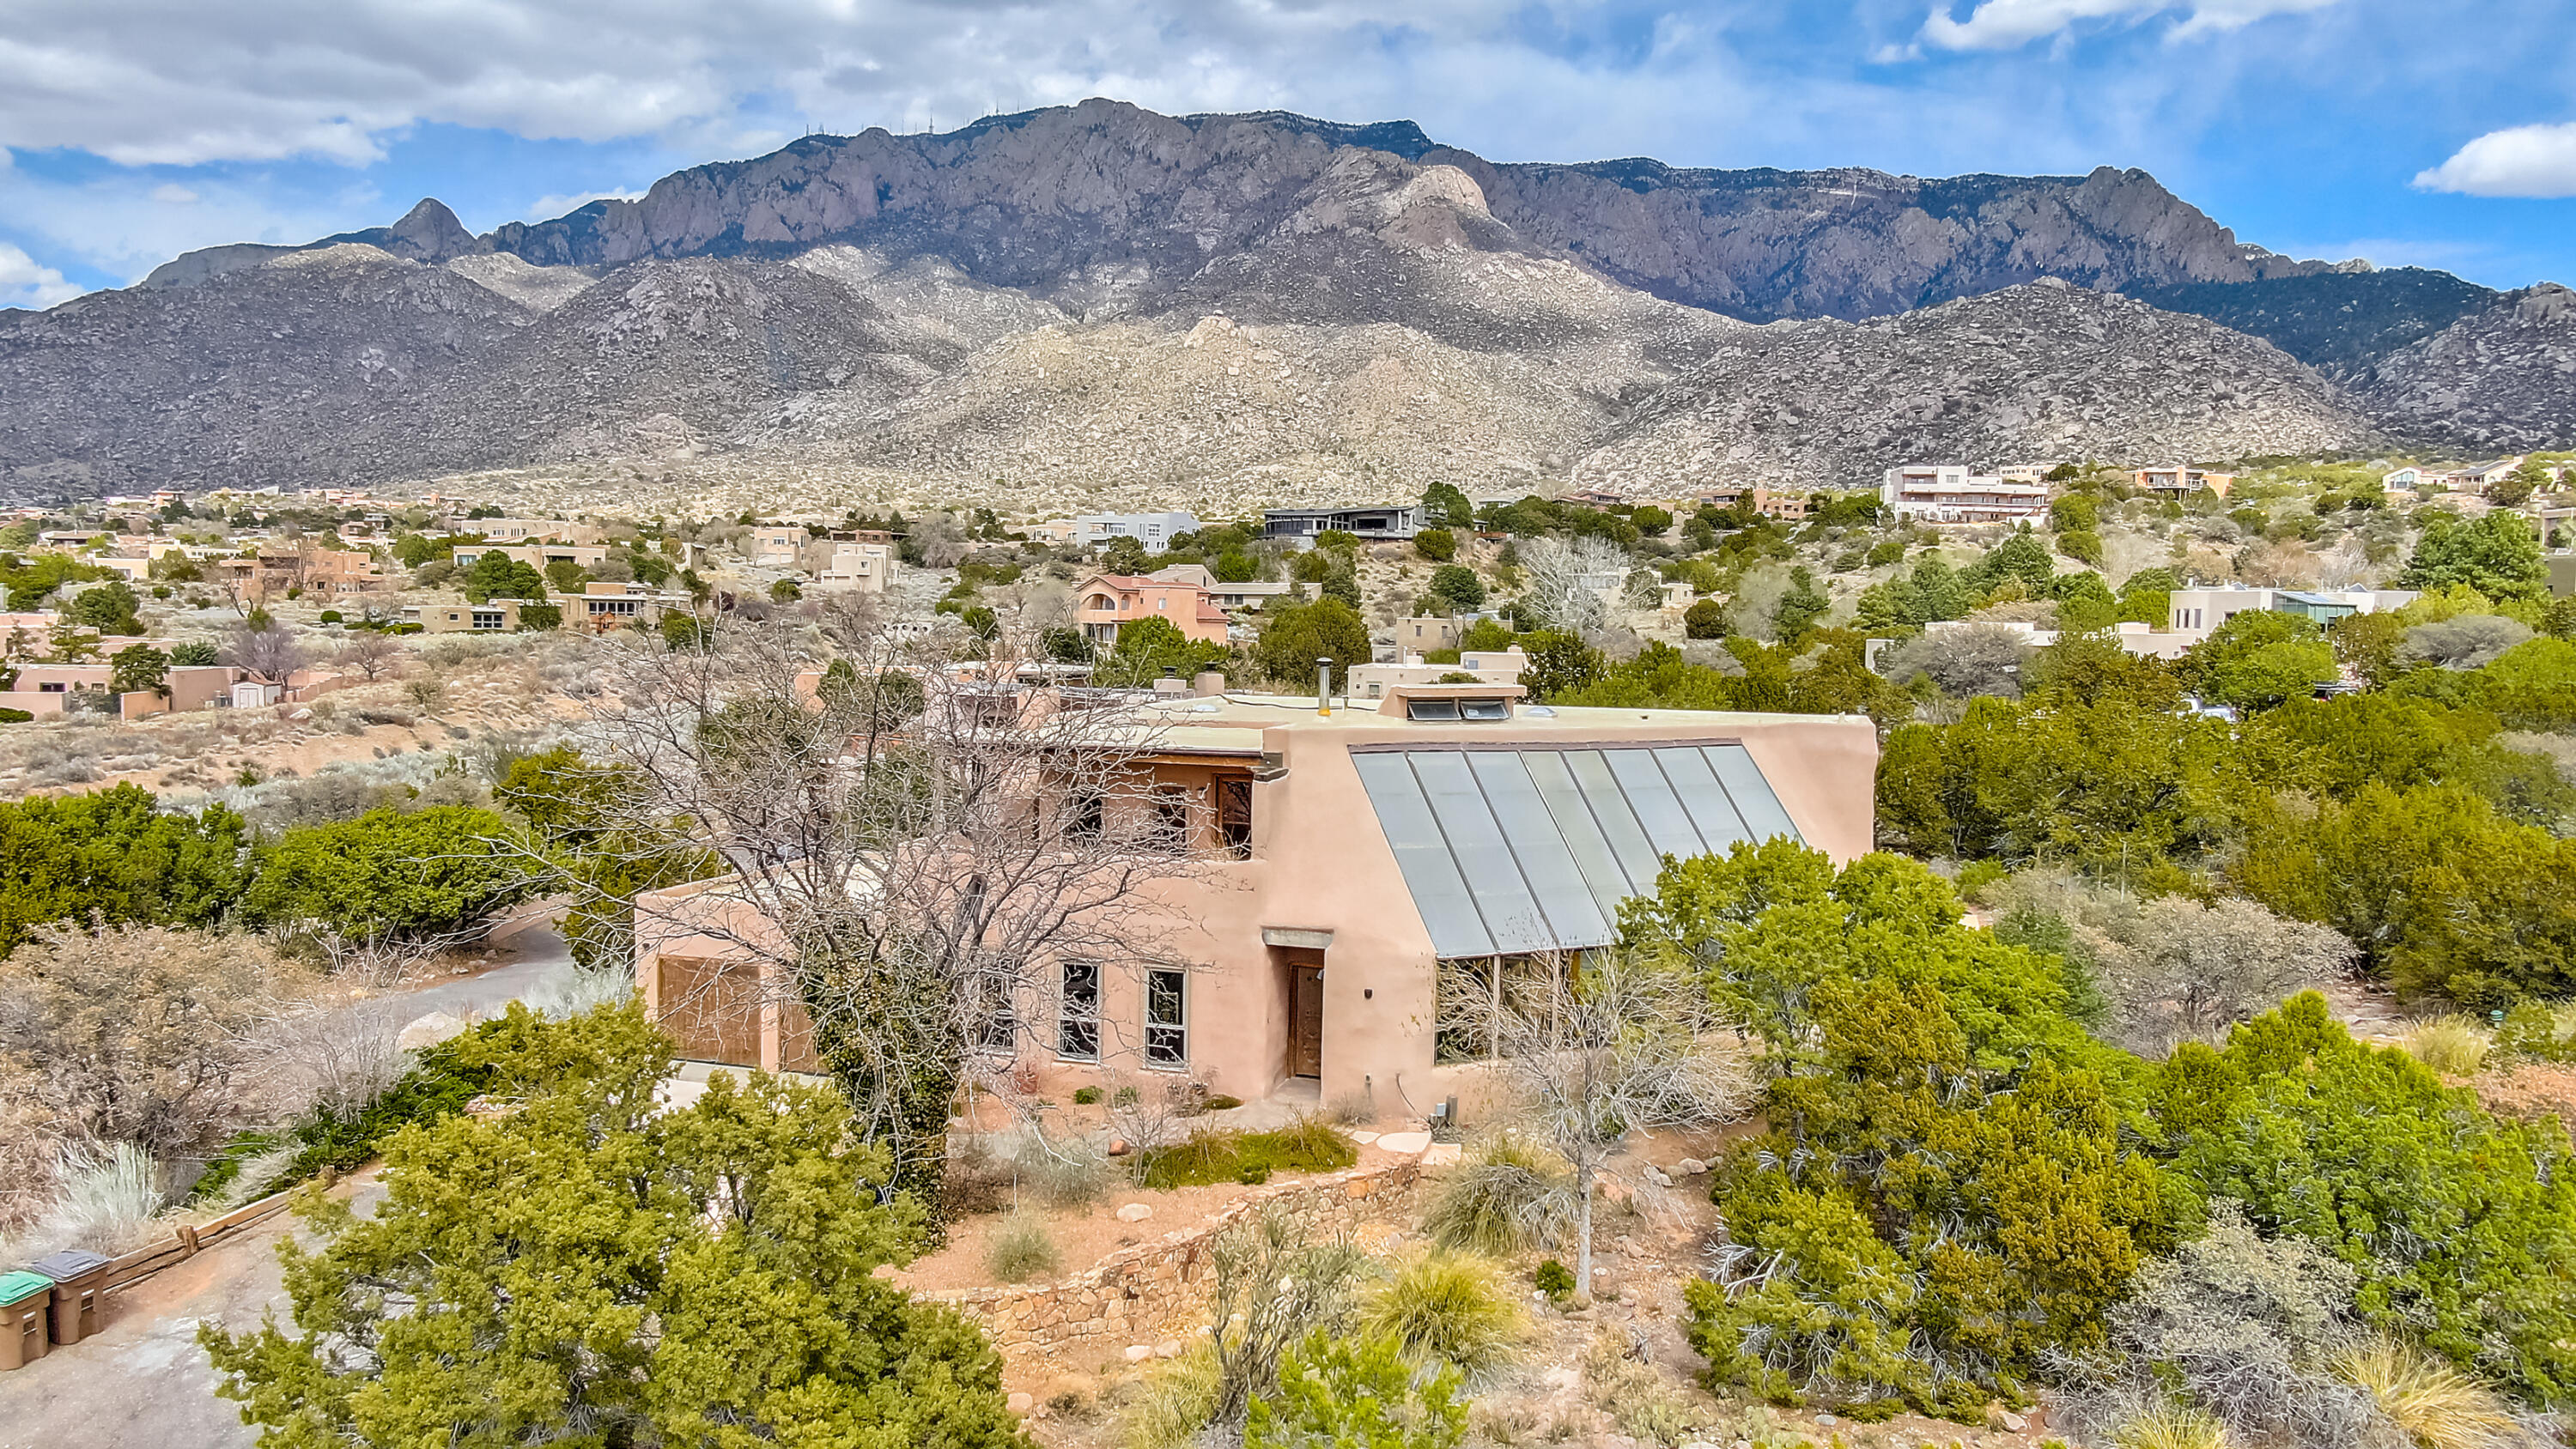 Way Beyond Ordinary - Pure Santa Fe charm / ambiance! Custom Adobe excellence nestled on a private wooded +/- .74 acre view lot at the Base of the Sandias just blocks to the National Forest.  Zen-like atrium / greenhouse will capture and ''soothe the soul'' with gorgeous rock and brick appointments, exceptional natural light, pond and huge passive solar heat.  Can't match the chef's kitchen with eye level Kiva fireplace and the private master's retreat with never ending vistas from the wrap-around view deck.  Four bedrooms, study/office, multiple living and dining areas, gorgeous latilla beam ceiling treatments, exposed adobe, Talavera tile and more pueblo charm at every turn. Feel the vibe- it's awesome!